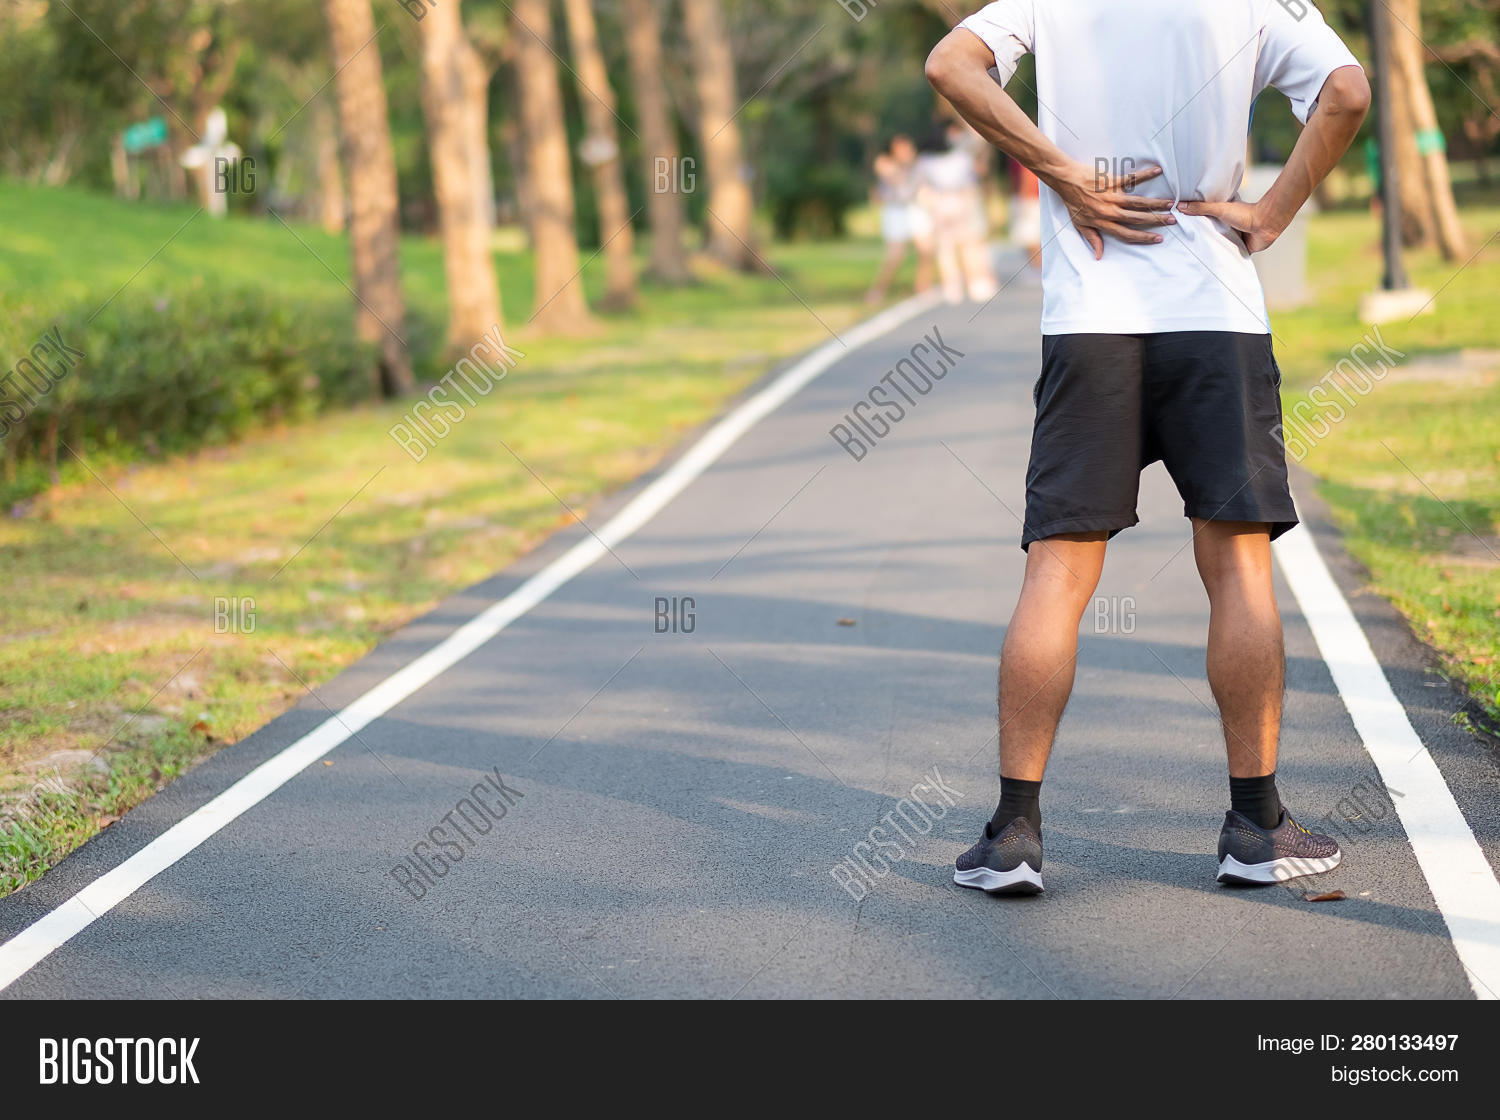 accident,ache,activity,ankle,asian,athlete,athletic,back,calf,exercise,feet,fit,fitness,health,healthy,injured,injury,jogger,jogging,joint,knee,leg,lifestyle,male,man,marathon,morning,muscle,nature,outdoor,outside,pain,painful,park,people,person,physical,problem,recreation,runner,running,shoes,sneaker,sole,sport,sprain,training,walking,workout,young